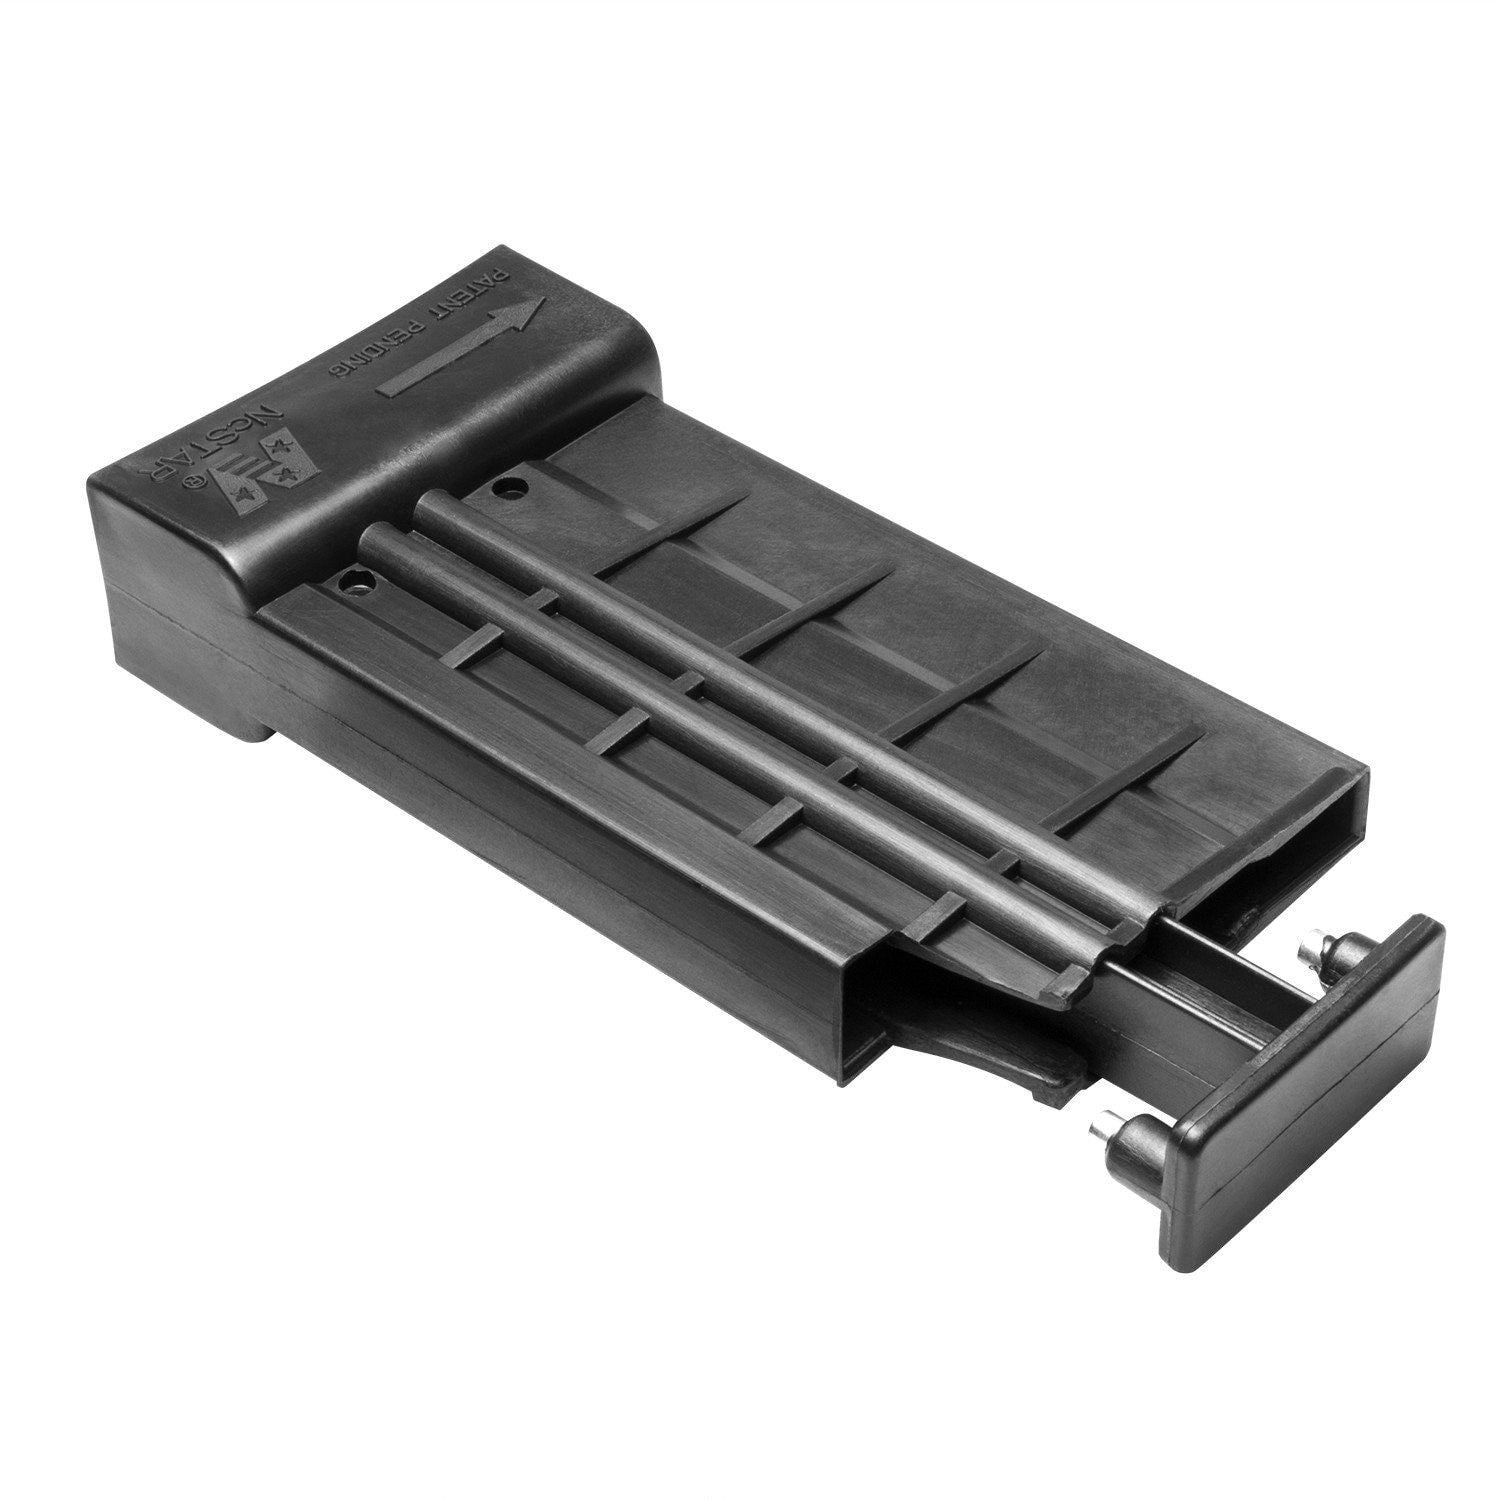 Fn Fal / M1A / M14 / Ar10 / Hk91 / G3 / Cetme .308 / 7.62X51 Nato Magazine Loader - Accessories/tools - Ncstar - Colonel Mustard